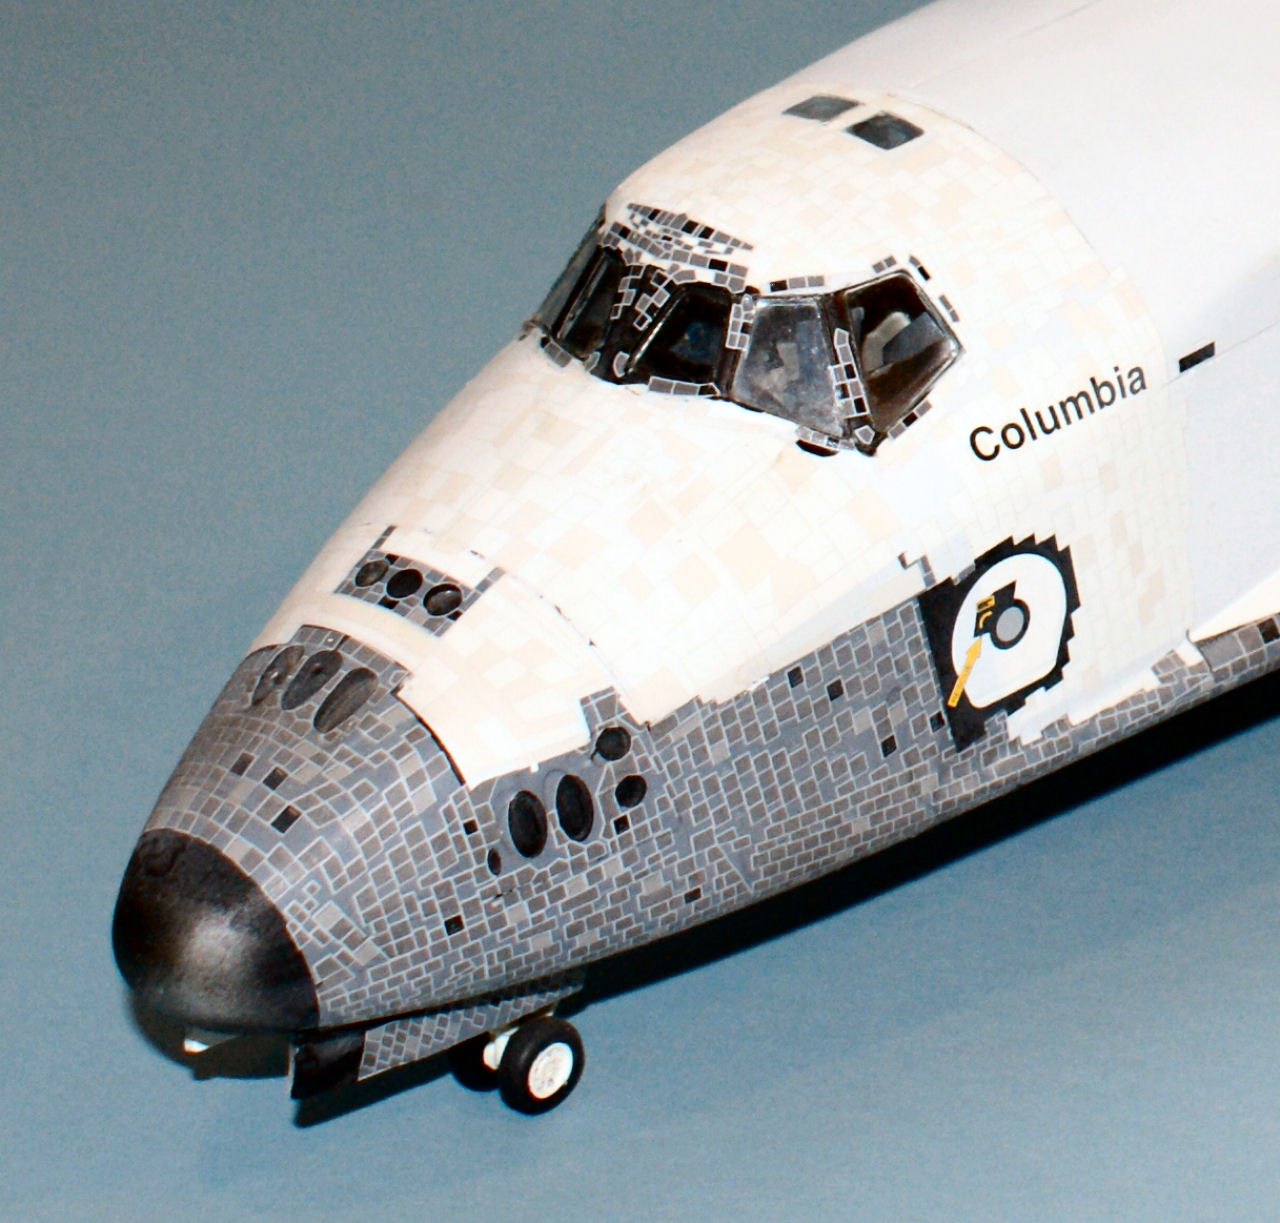 Monogram 5904 1 72 scale space shuttle columbia kit build for Space decals